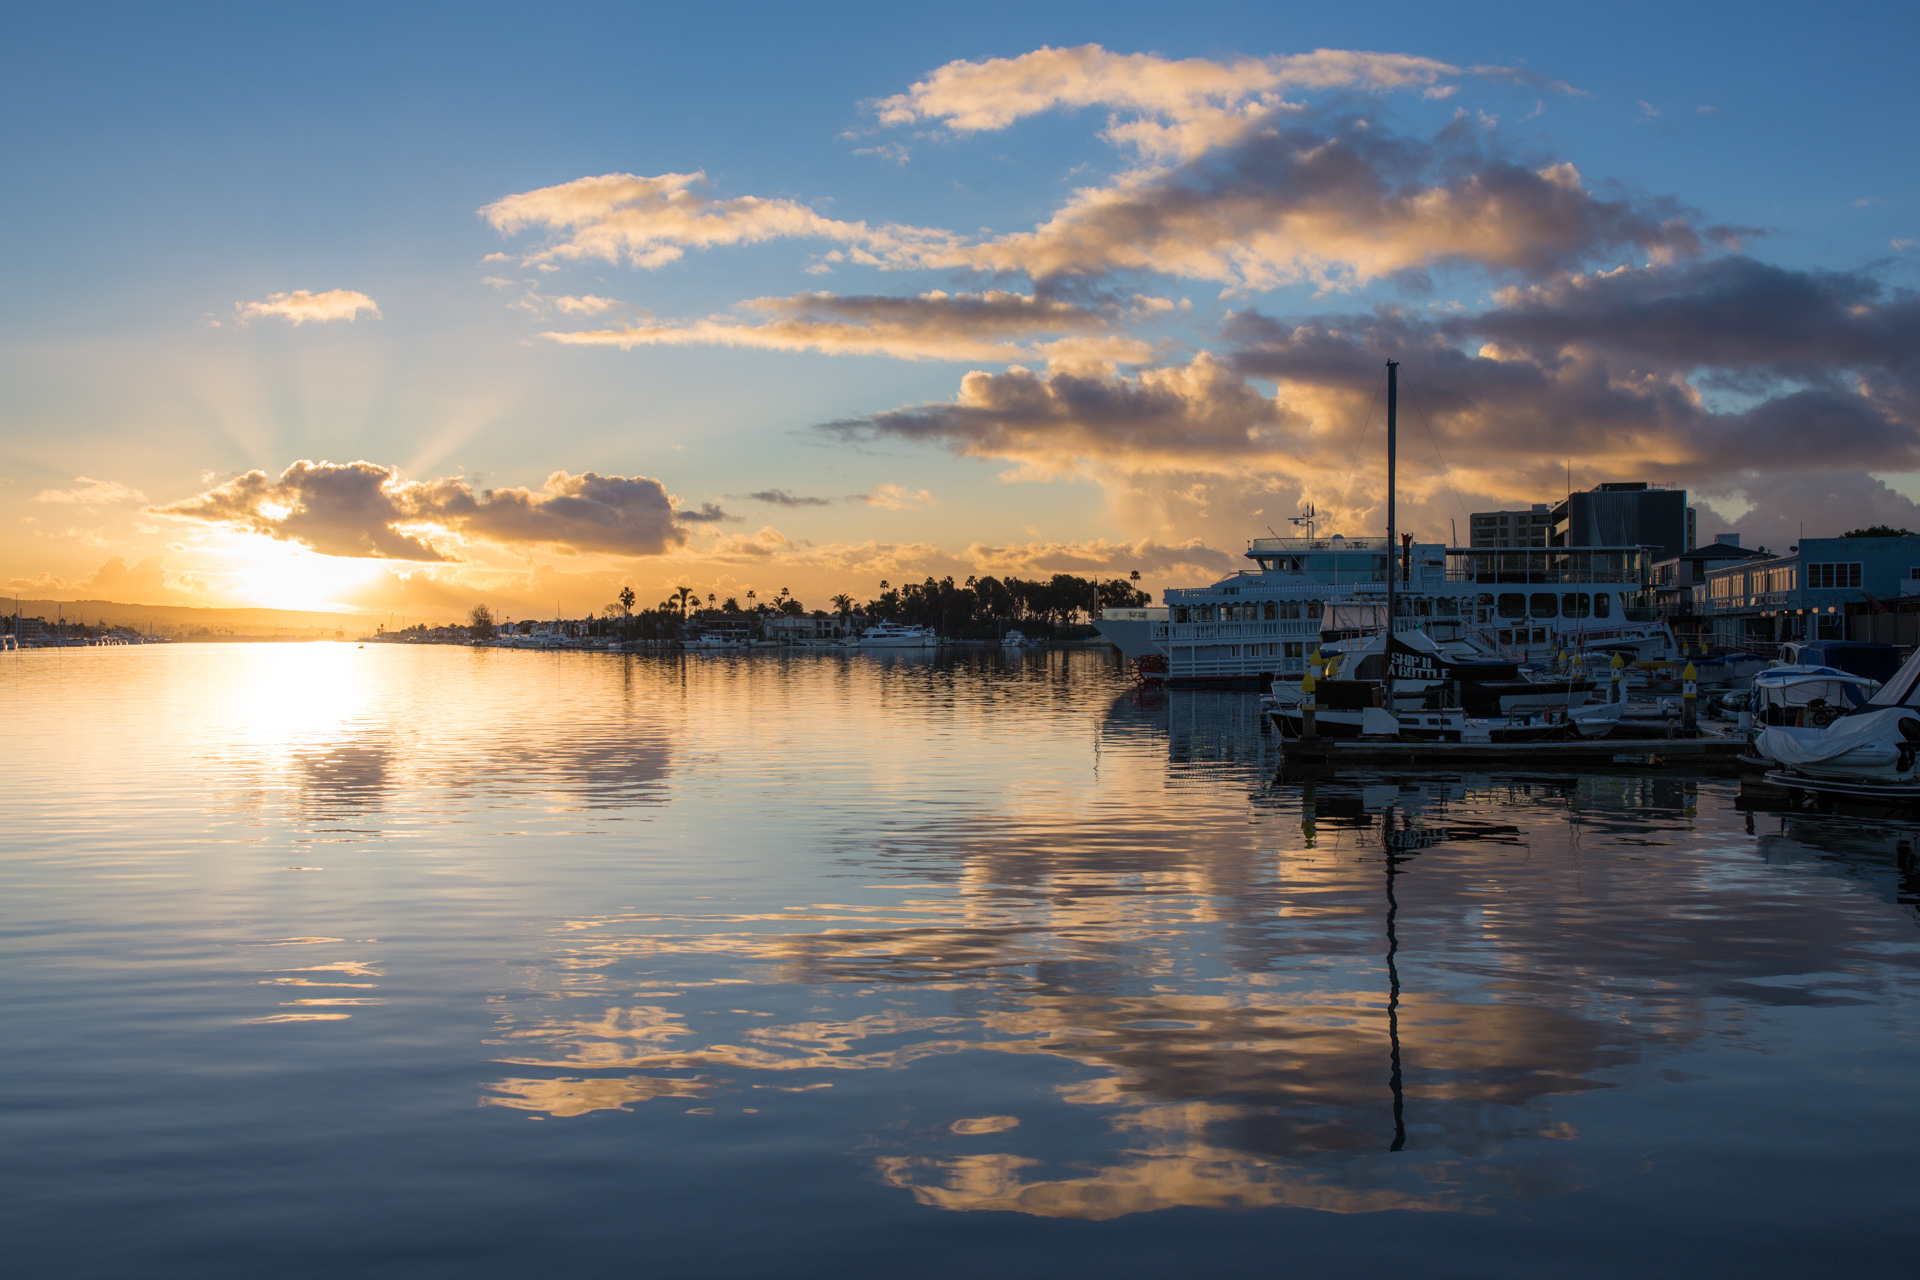 Sunrise reflected in the Newport Beach bay